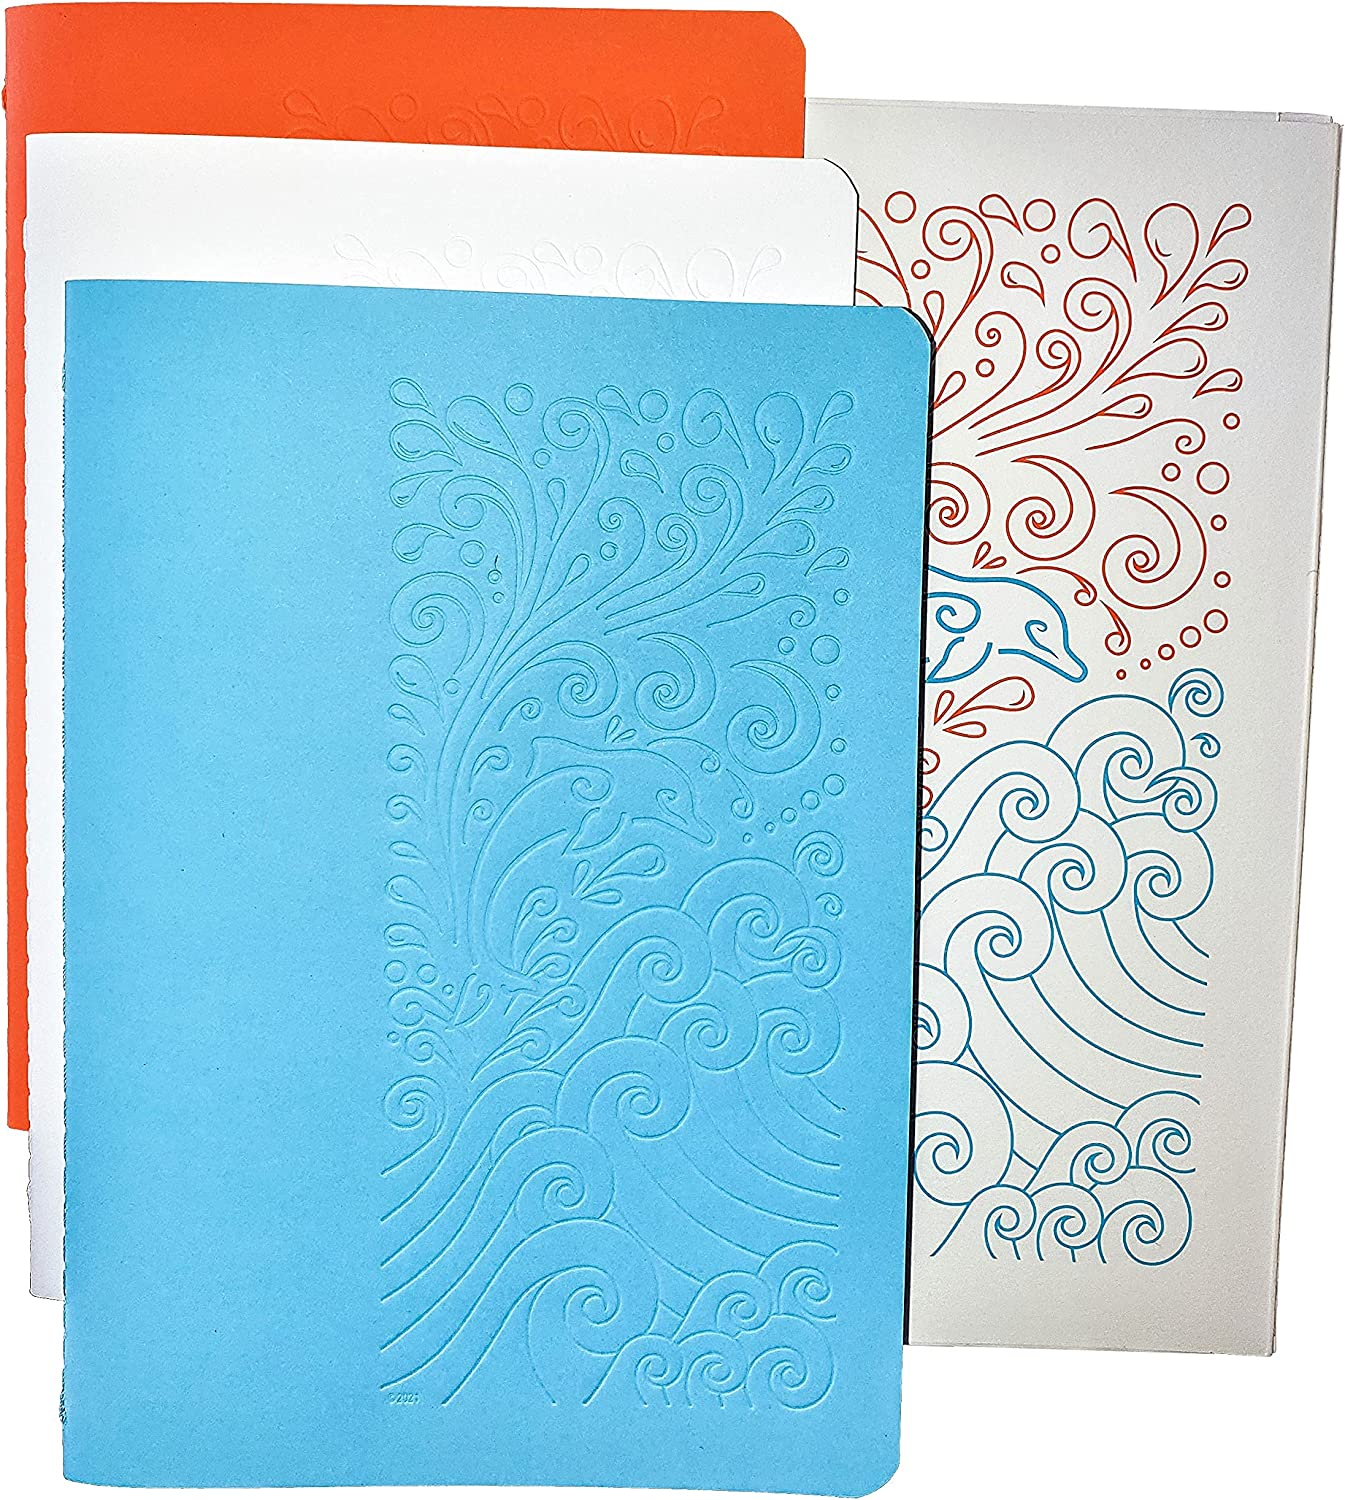 Art Max 54% OFF Journal Sketchbook Mixed Media Paper Pa Paint Set Gift 3 of OFFicial store